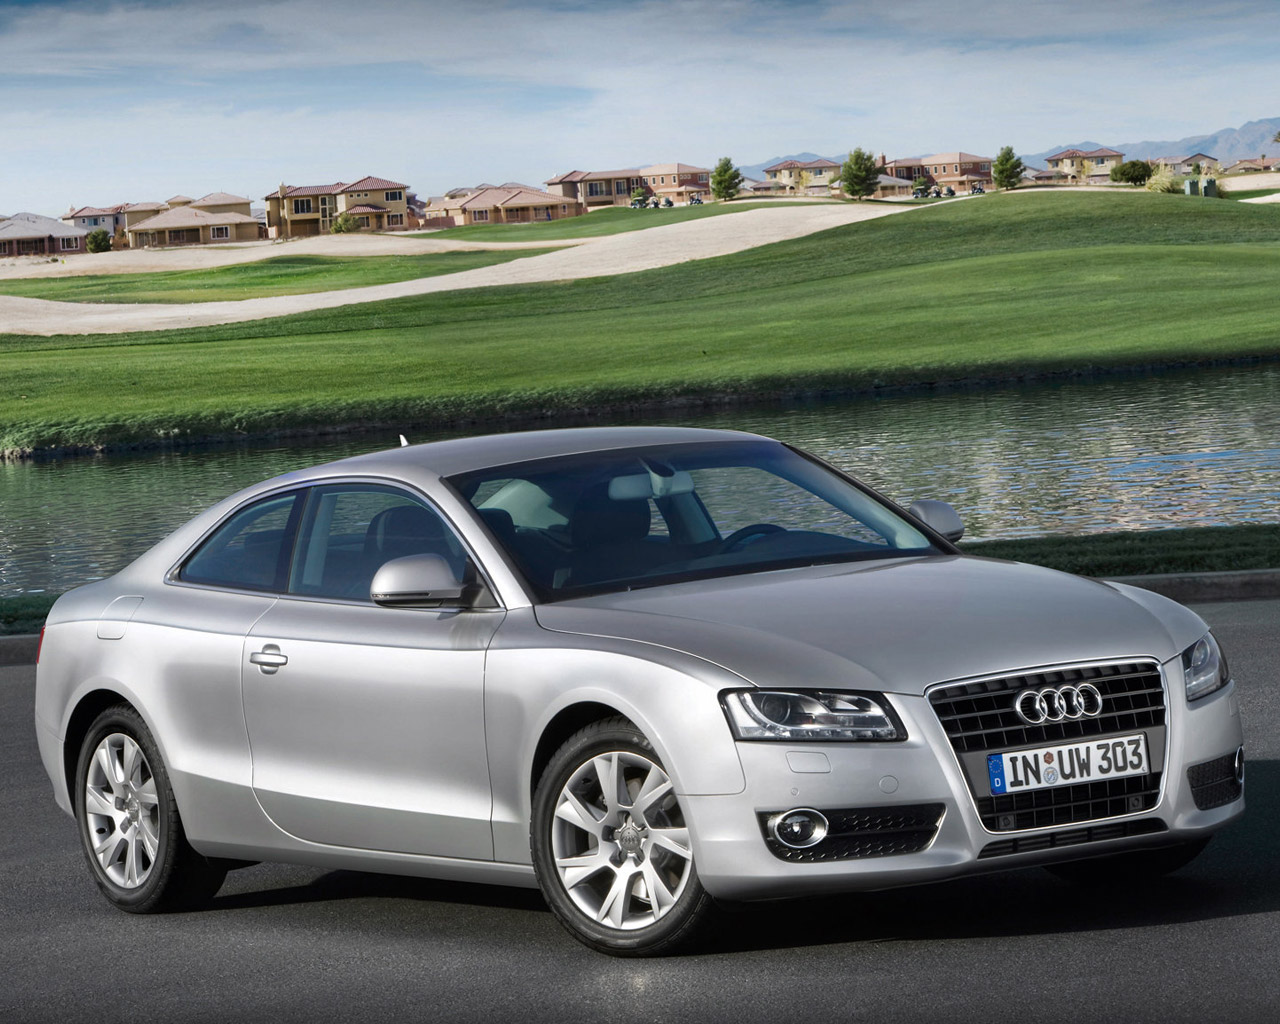 audi a5 wallpapers%252c cars photo%252c images and picture download 1